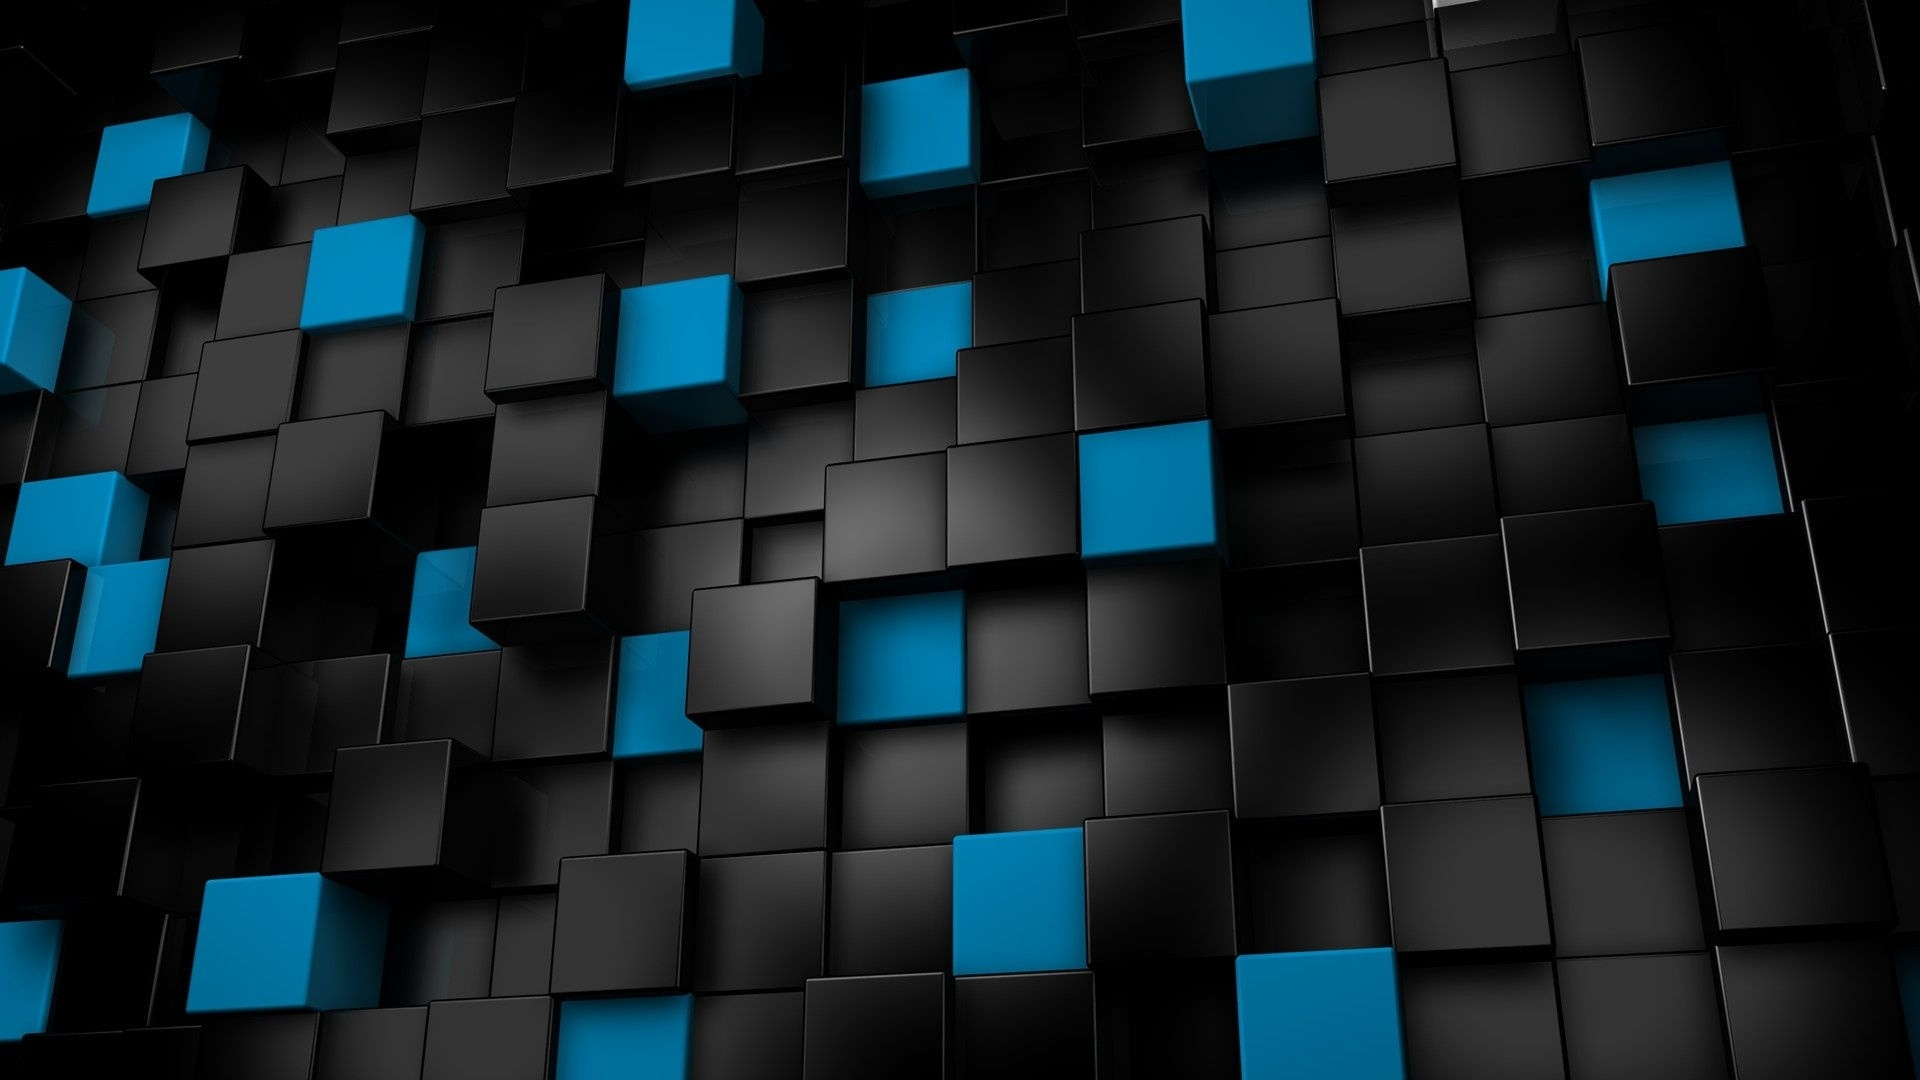 black and blue wallpaper http://www.hdwallpaperspop/black-blue